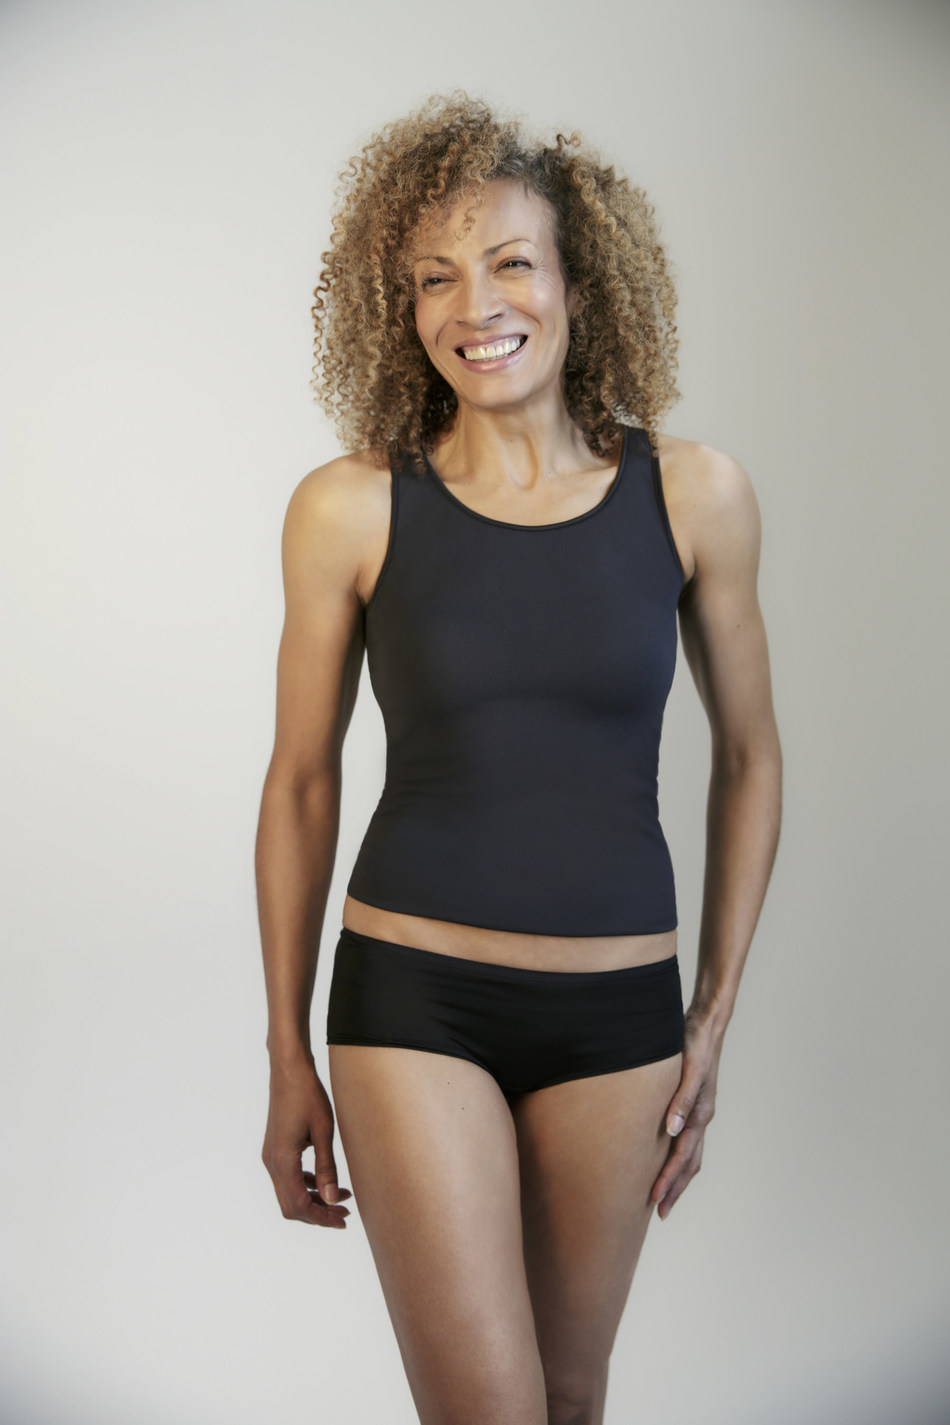 Anti-Flush Technology (TM) Tank and Pants in Black from Become. The range helps regulate temperature during a hot flush using innovative, patent-pending fabrics to keep the body cool and dry. From £19 from webecome.co.uk